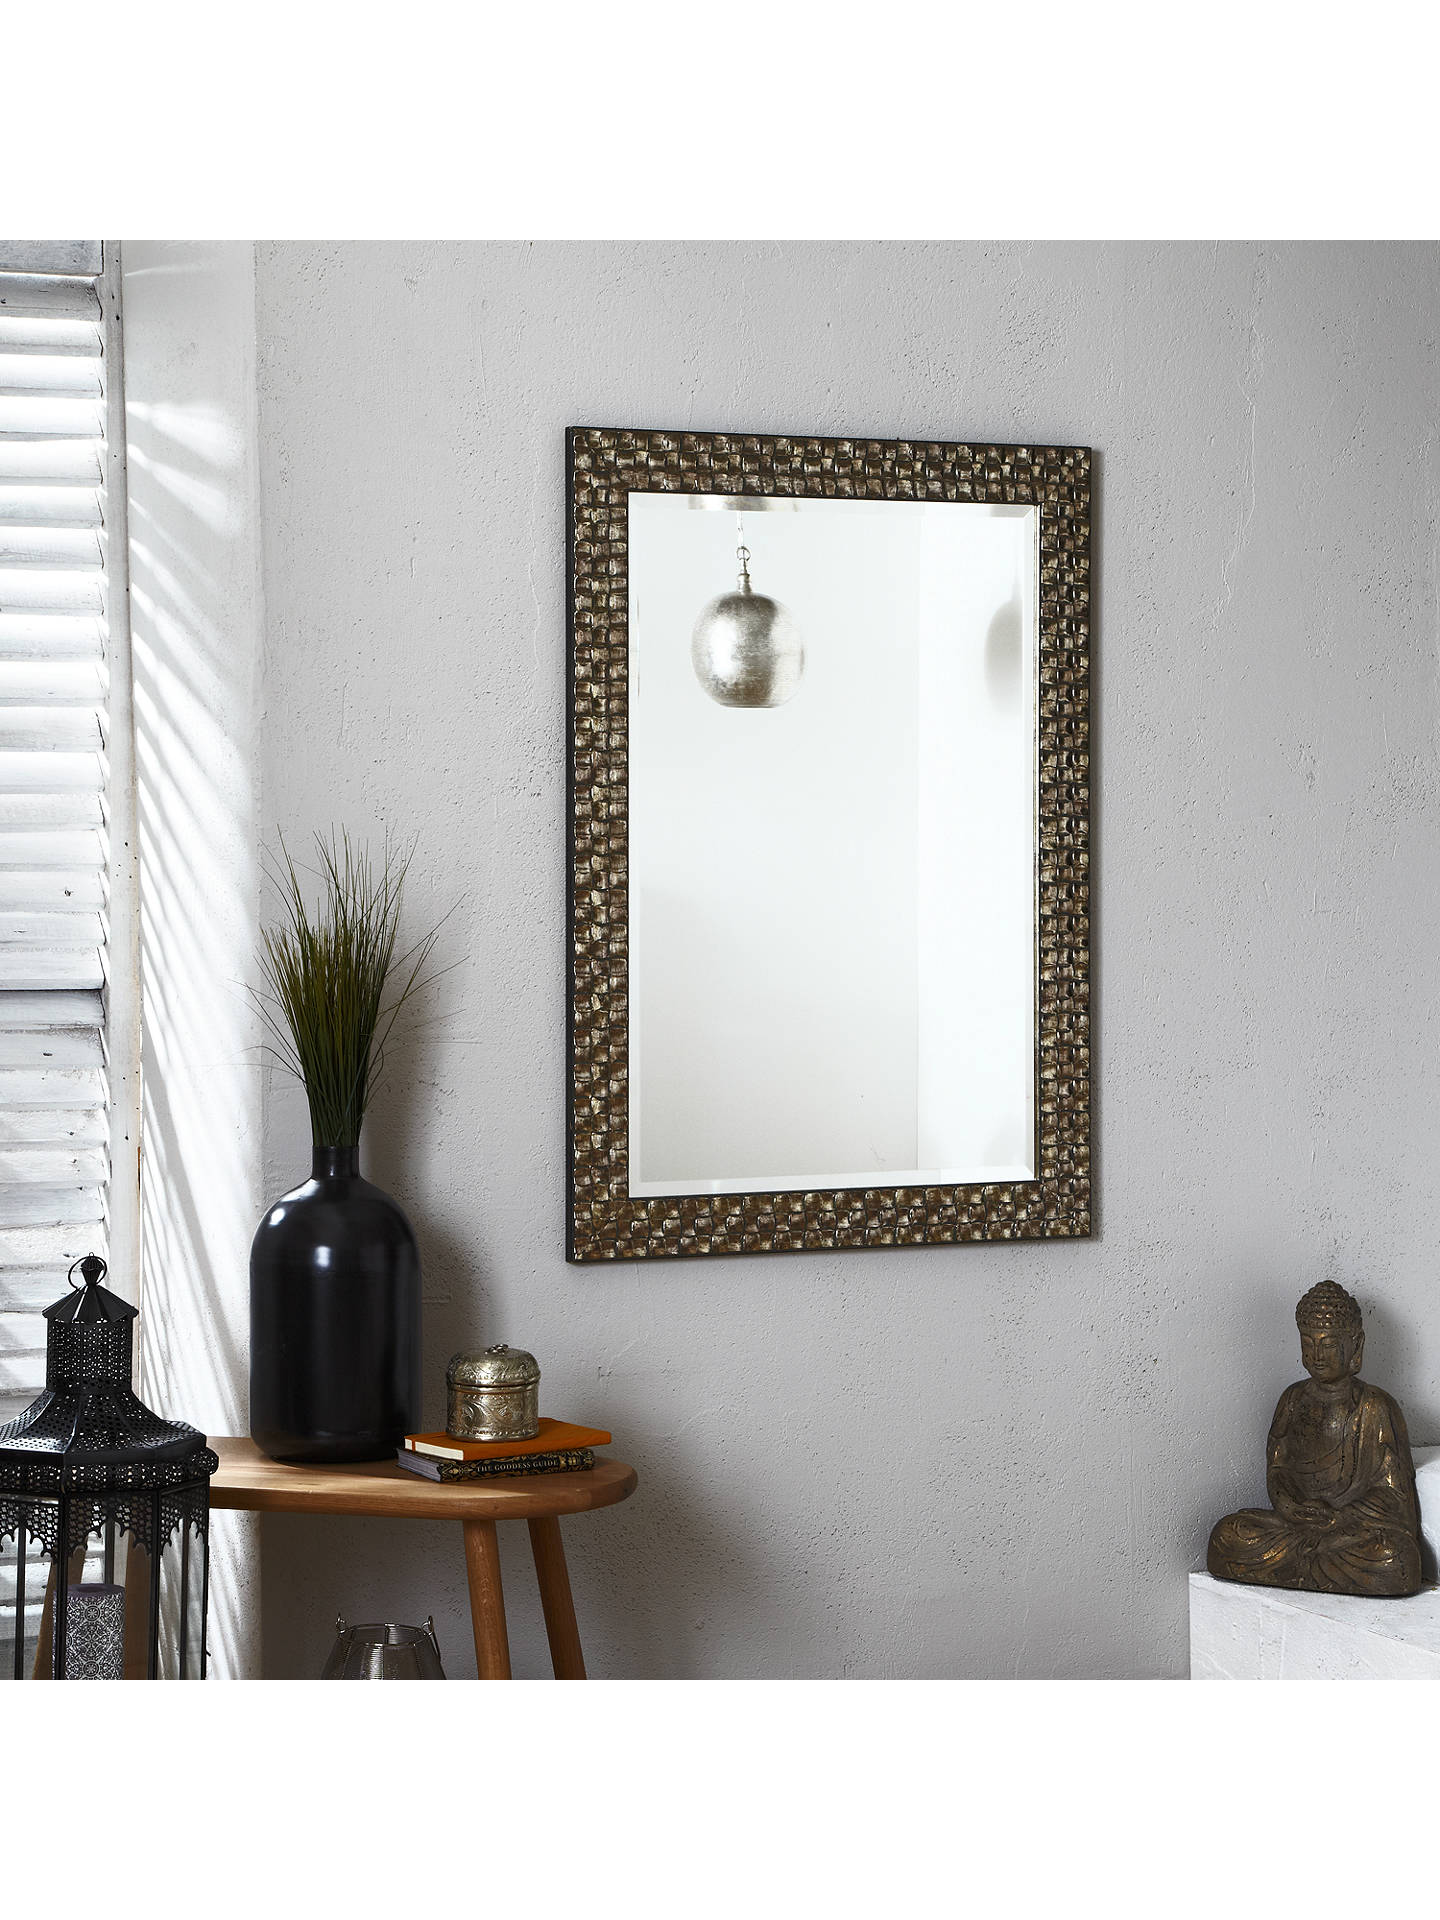 BuyJohn Lewis & Partners Mosaic Wall Mirror, 106 x 75cm, Champagne Online at johnlewis.com